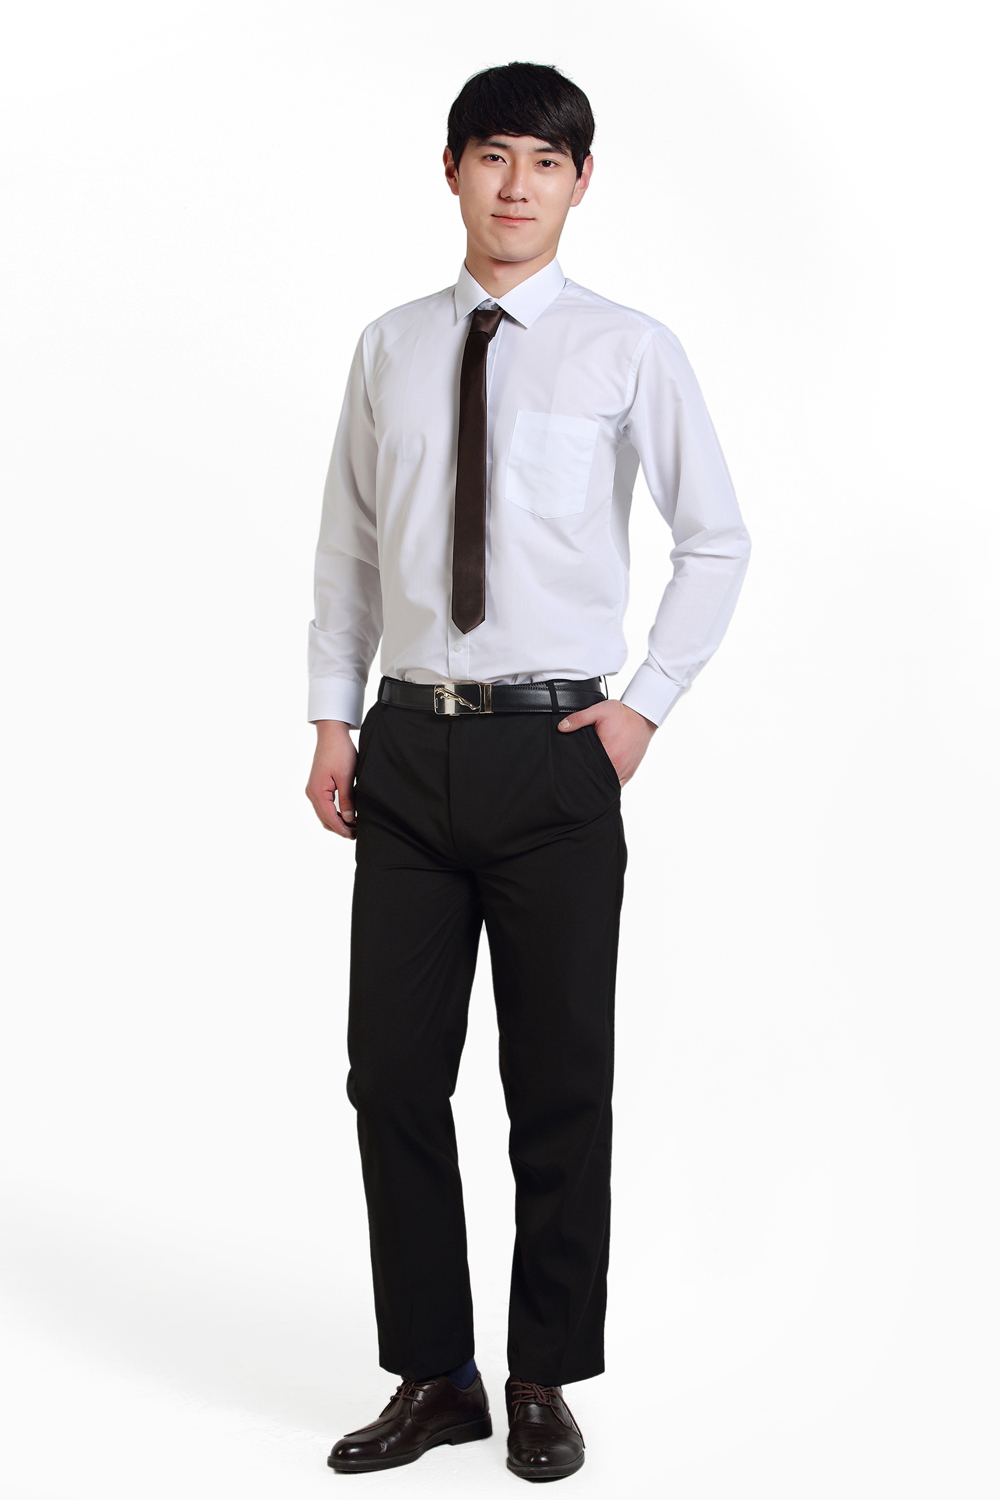 2015 oem office suit business suit design for men white for Dress pants and shirts for men